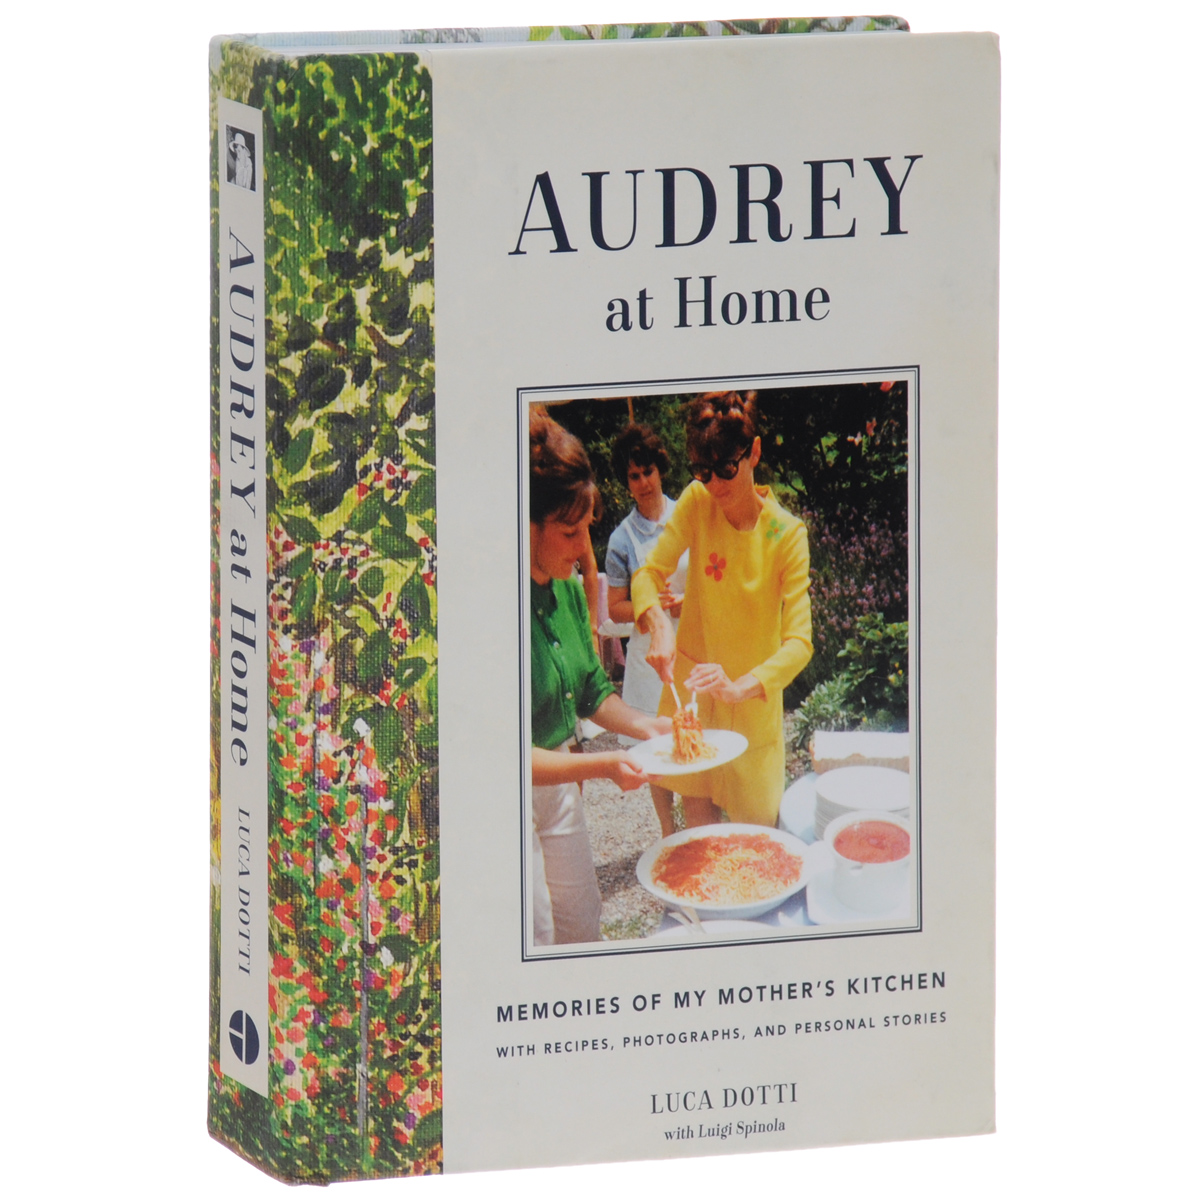 Audrey at Home: Memories of My Mother's Kitchen afro hair lady immersed in her own world pattern shower curtain